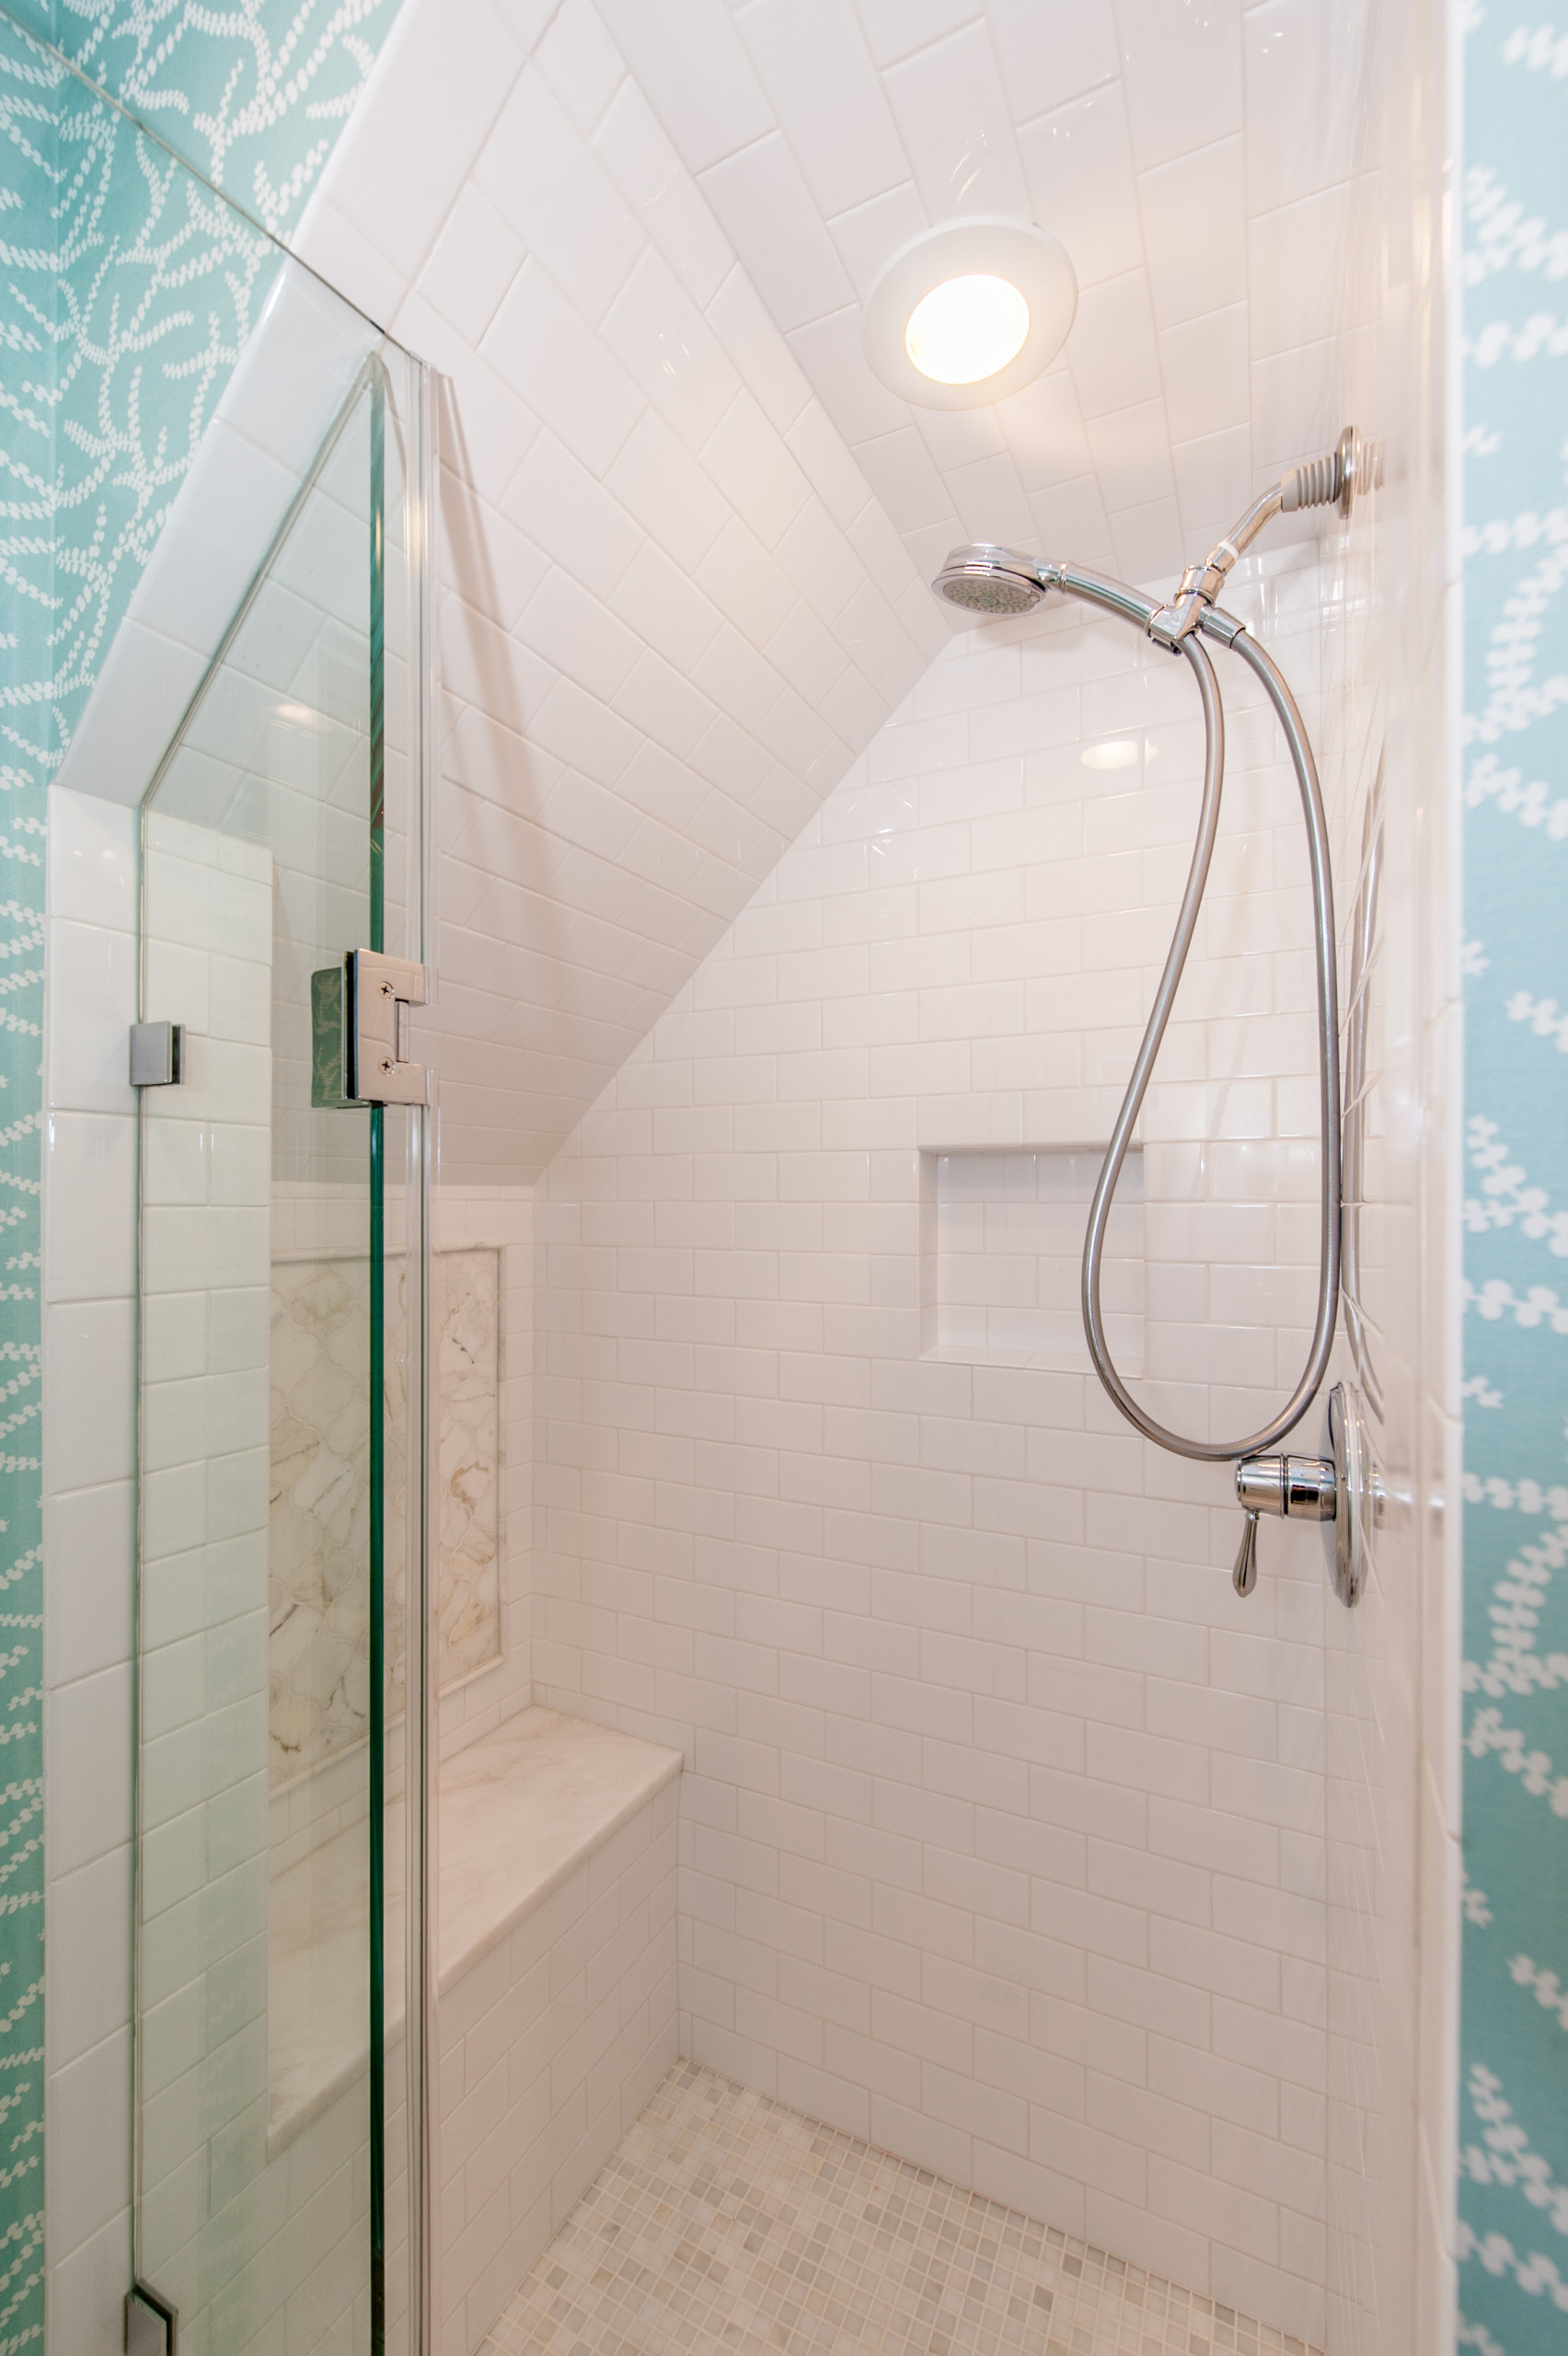 Chevy Chase, MD Kids' Beachy Bedroom and Bathroom Expansion